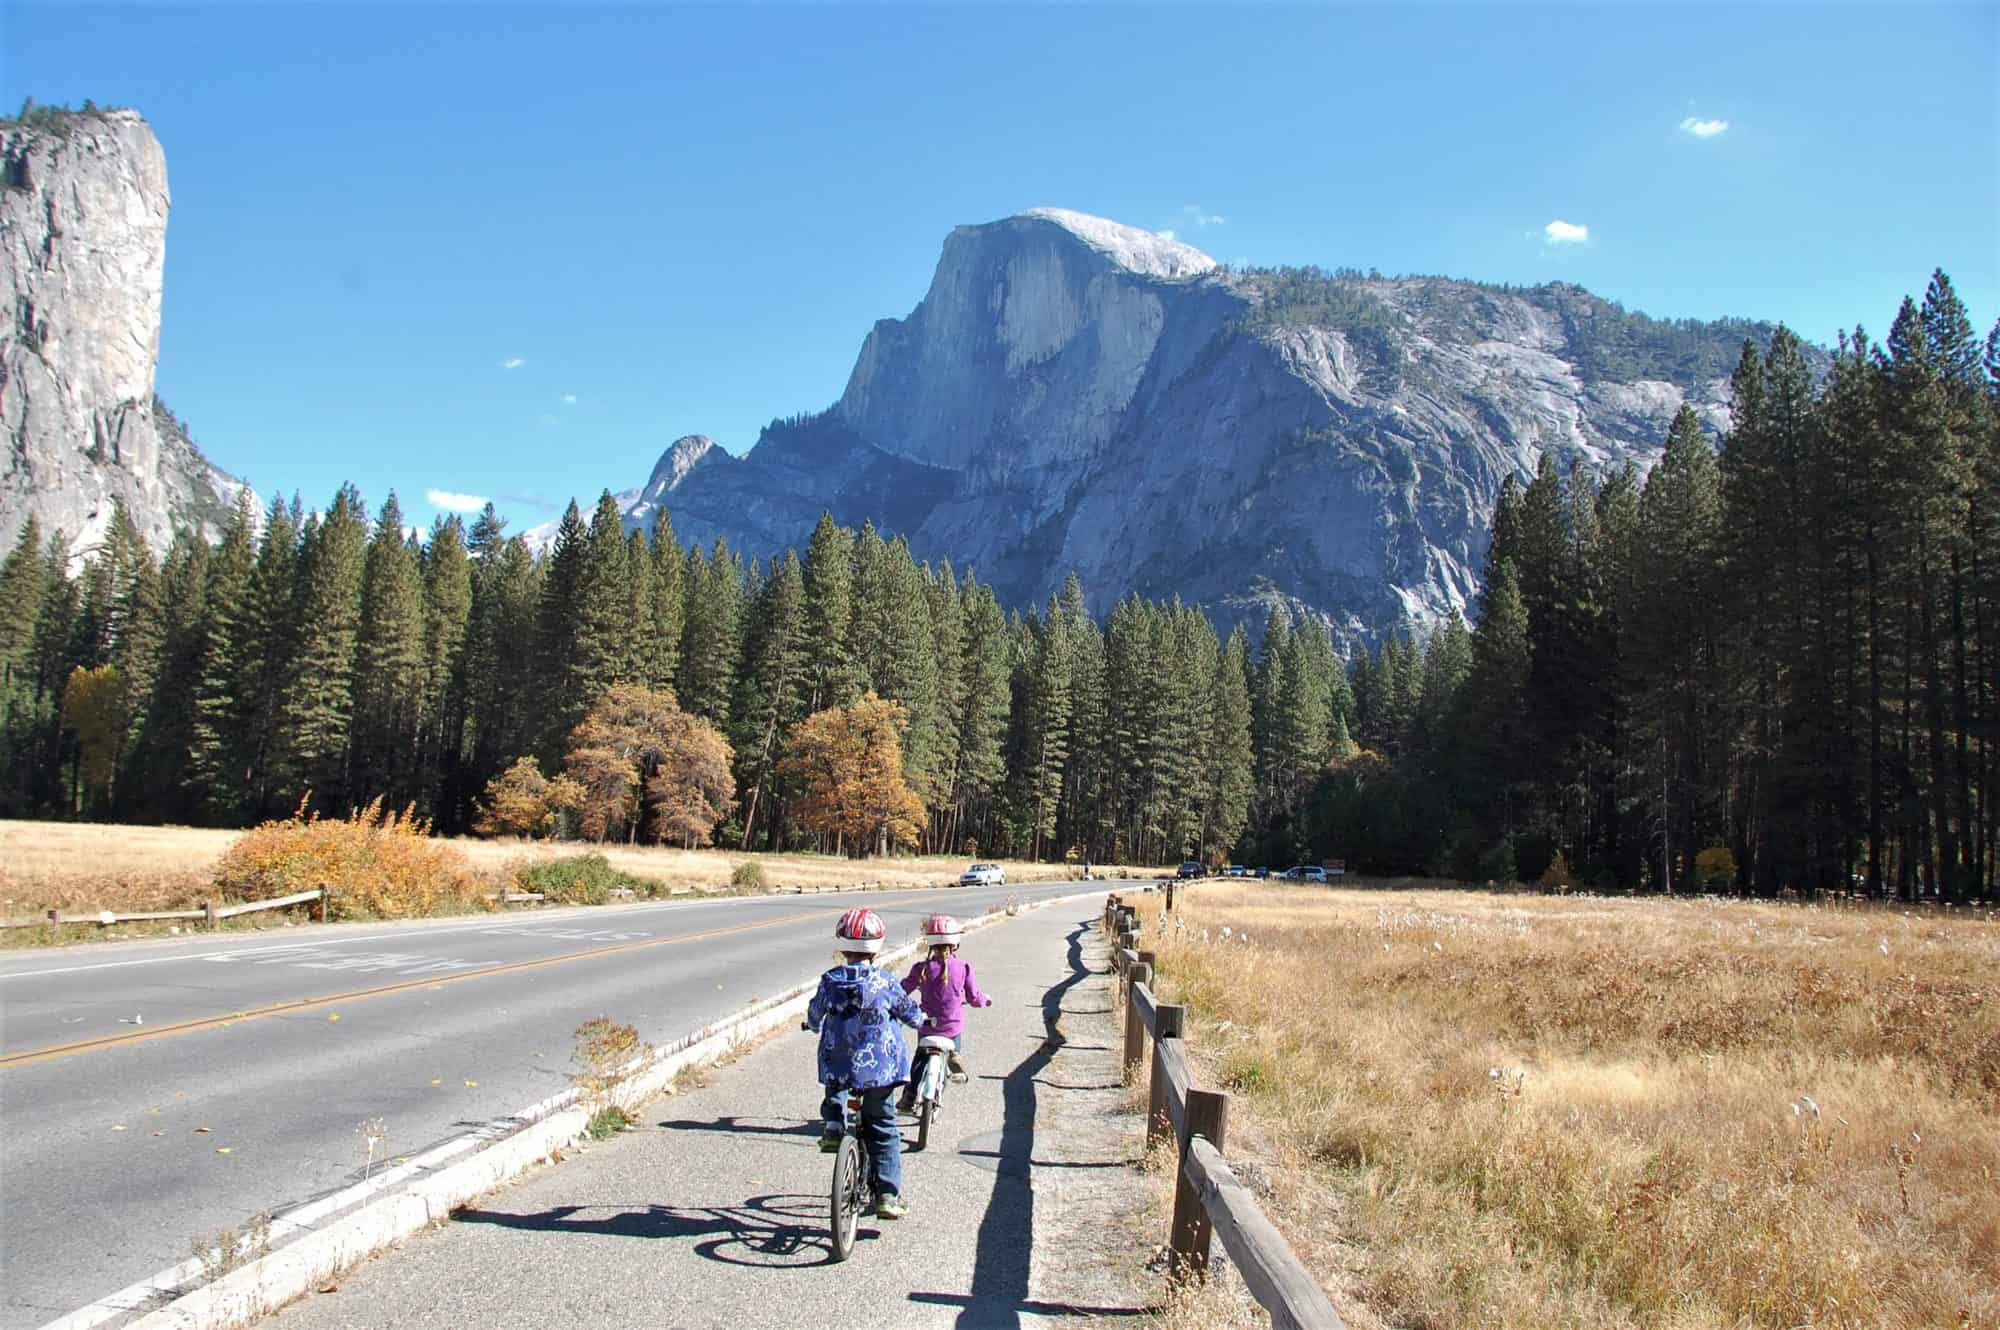 The Best Time to Visit Yosemite | Tips to Avoid the Crowds